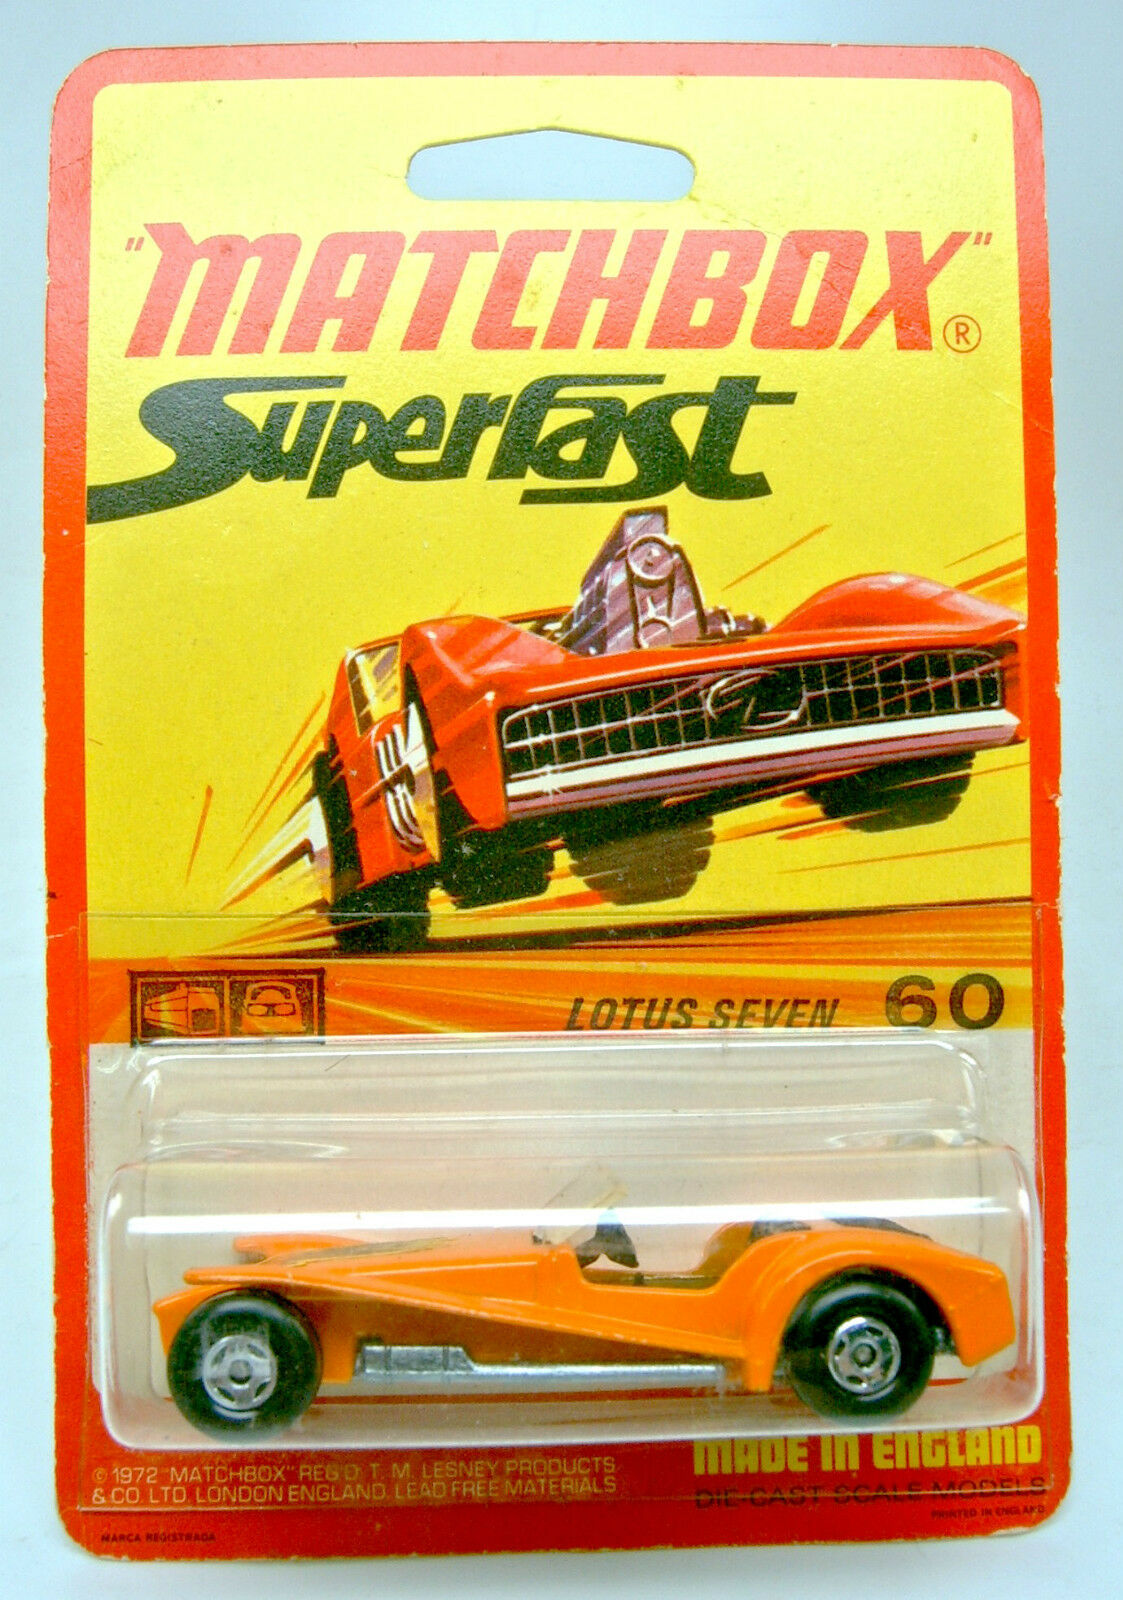 MATCHBOX superfast Nº 60b Lotus super 7 Orange sur écotoxicologiques 1972 étui.